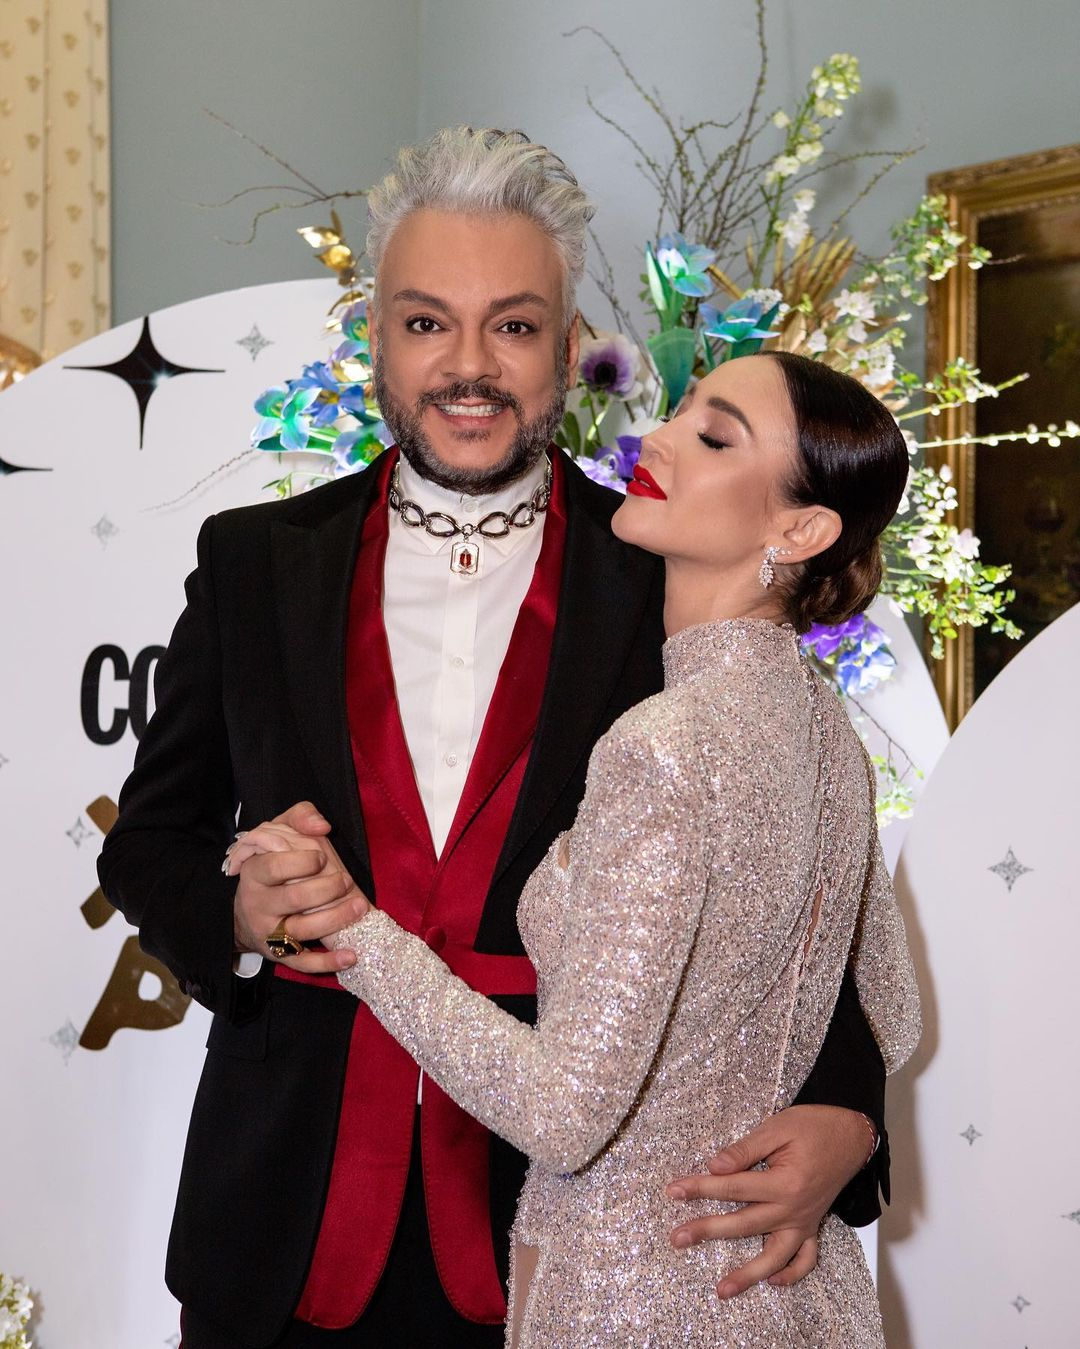 Philip Kirkorov answered reporters' constant questions about Pugacheva